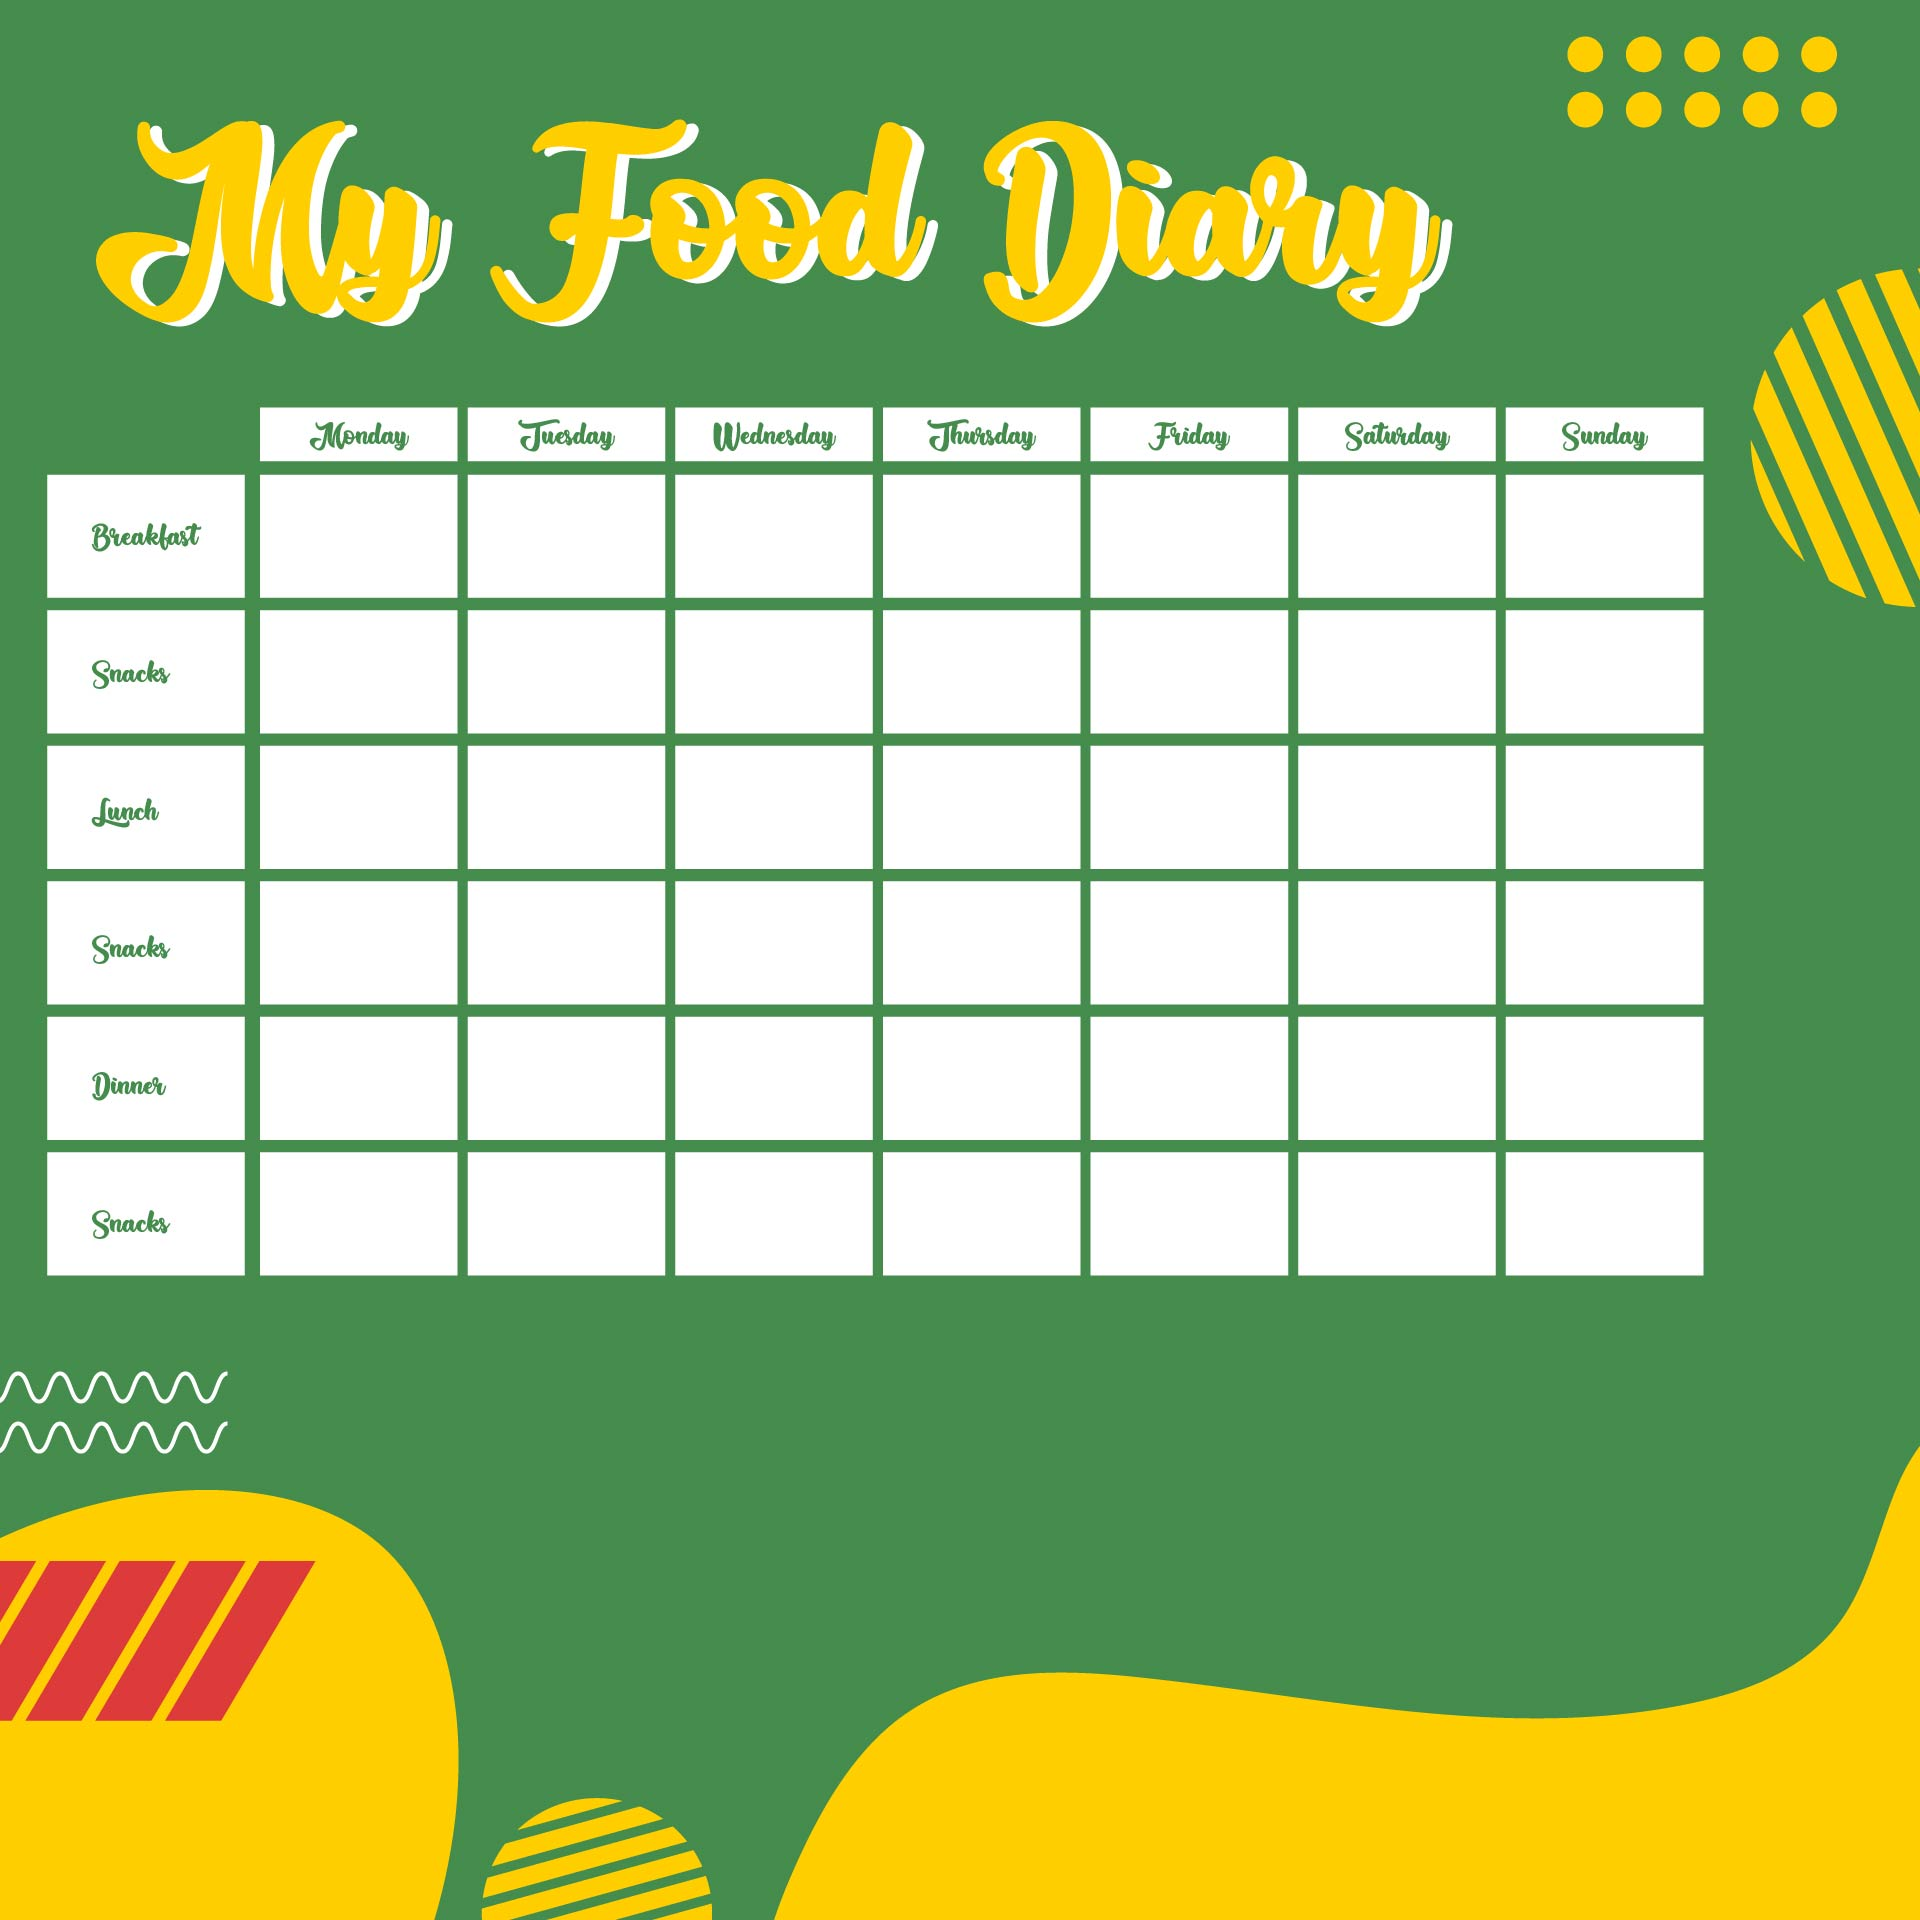 Free Printable Food Journal For Weight Loss Pdf